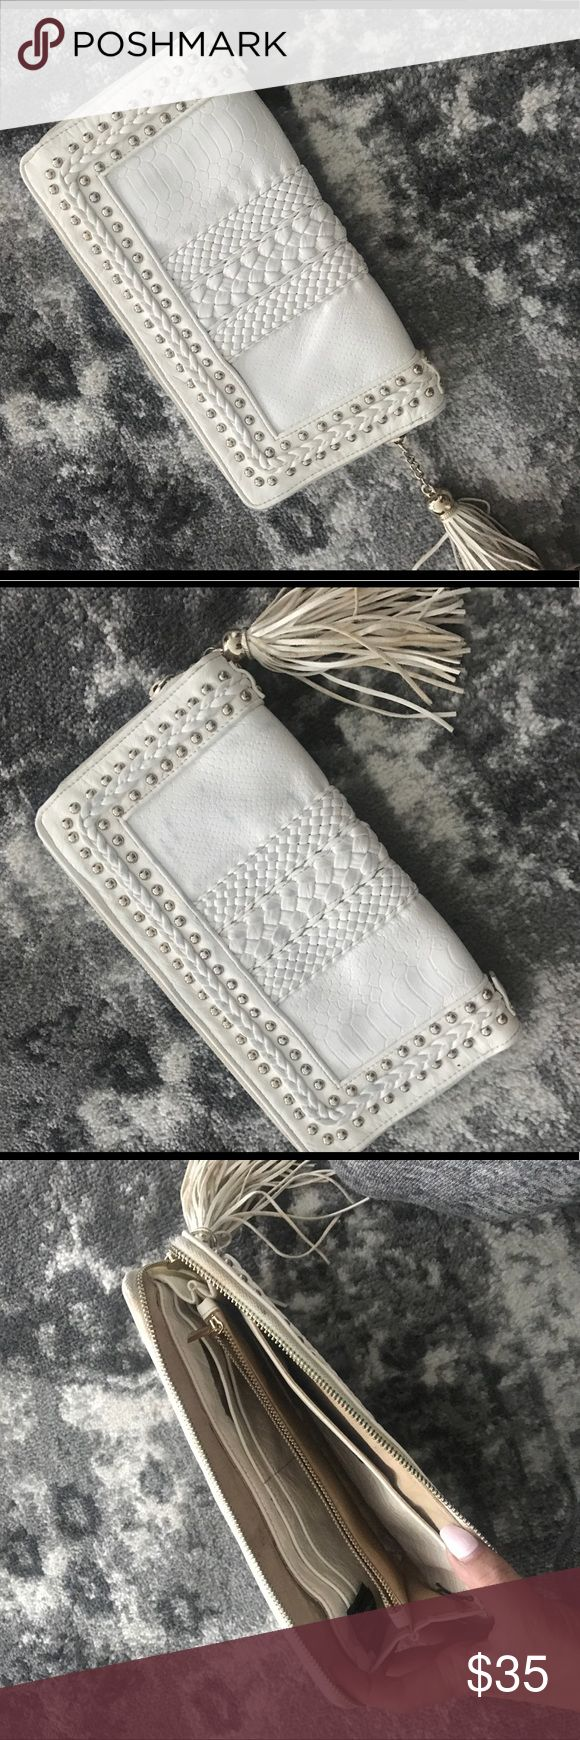 White studded clutch White zip clutch. Wallet clutch with gold embellishments. Bags Clutches & Wristlets